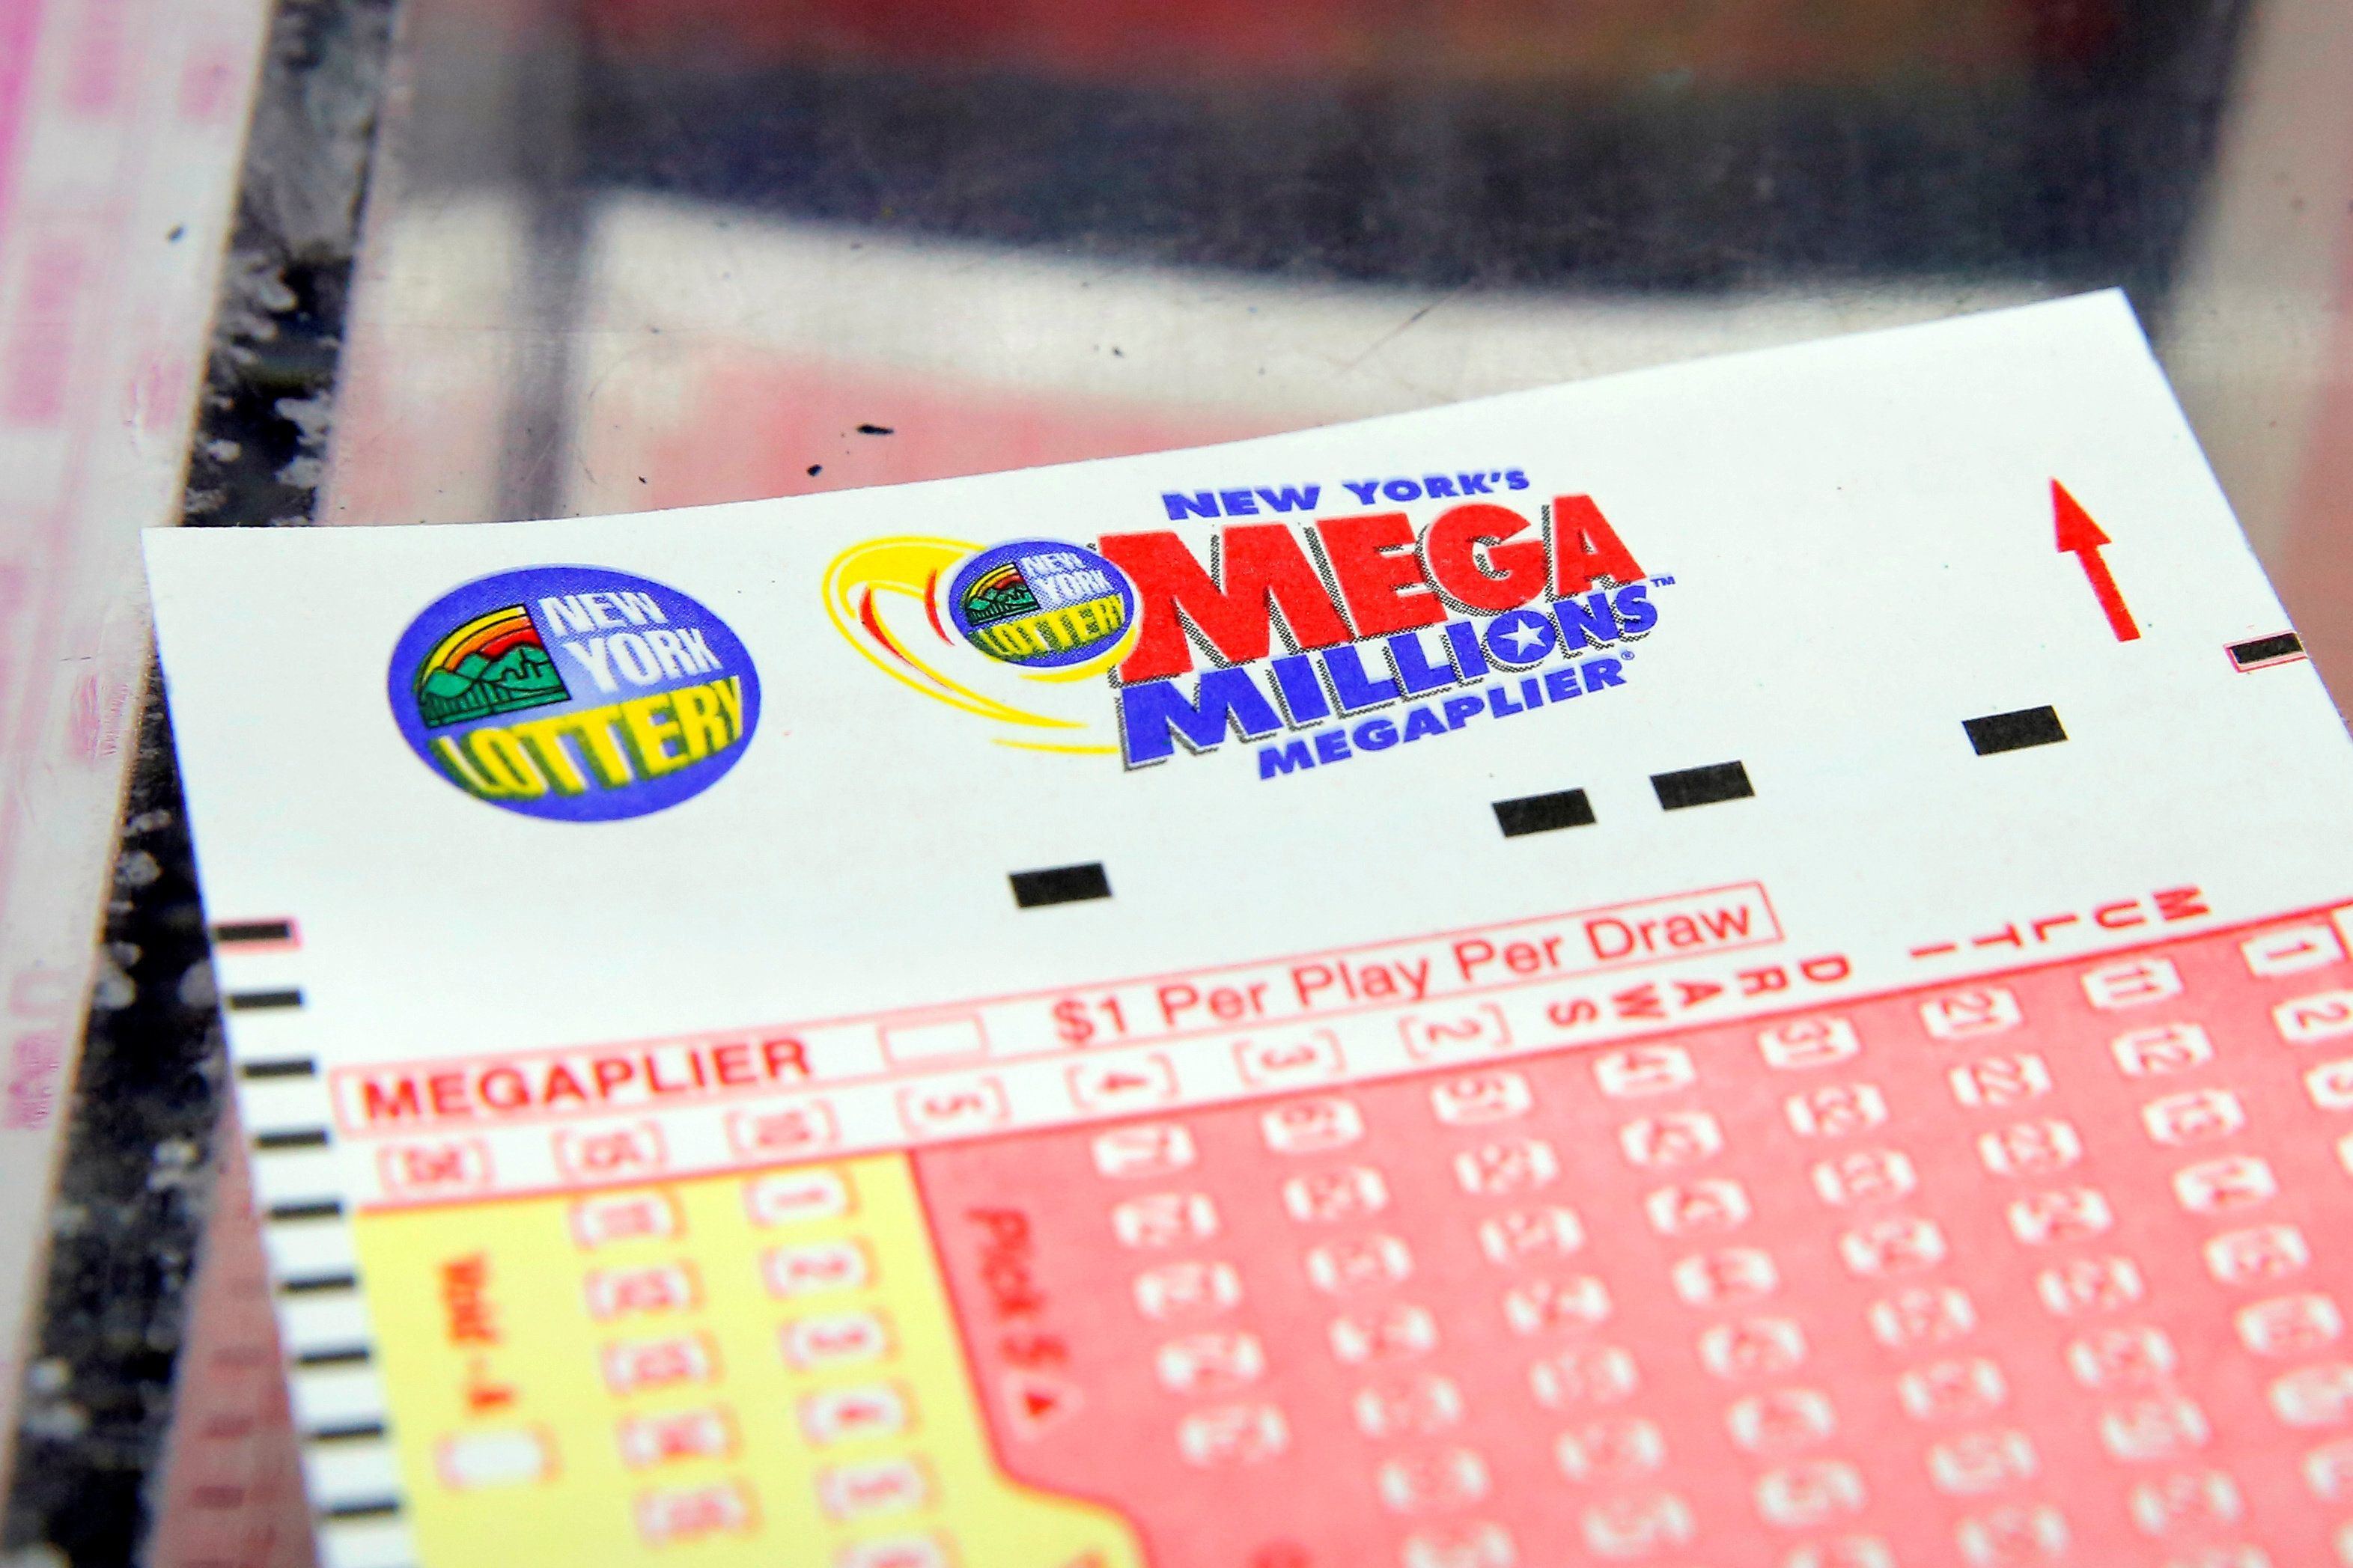 The Mega Millions lottery game failed to produce a winning ticket Friday, bringing the jackpot to $449 million.